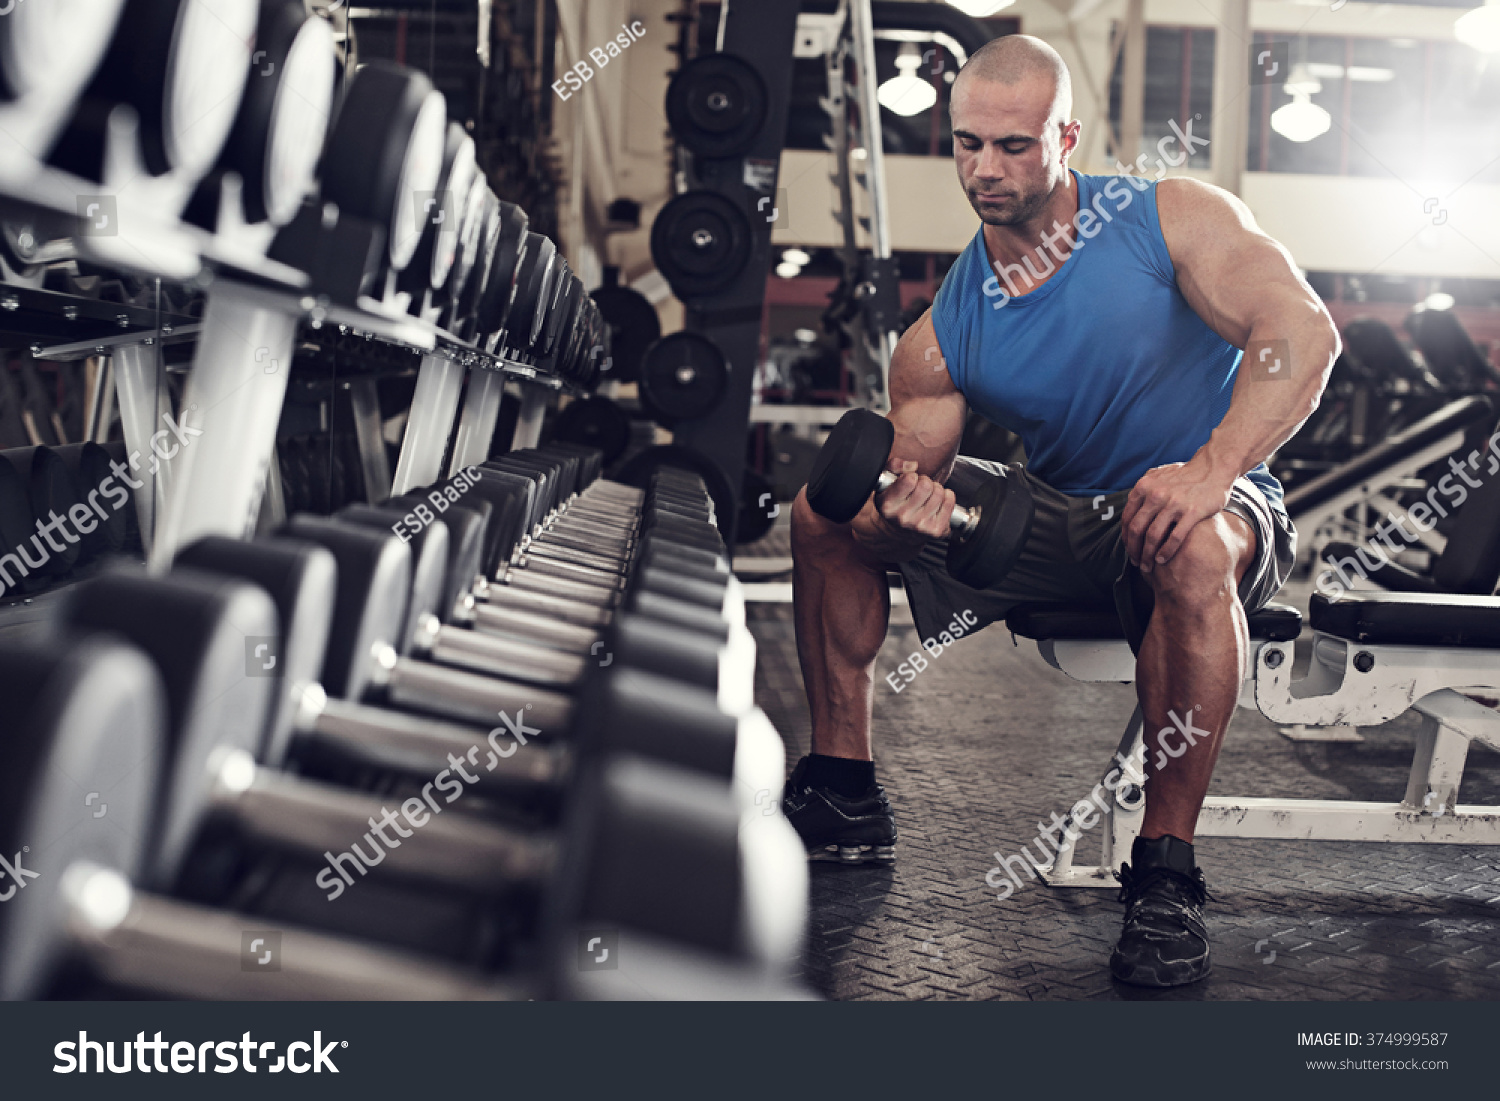 Bodybuilder Working Out Bumbbells Weights Gym Stock Photo ...